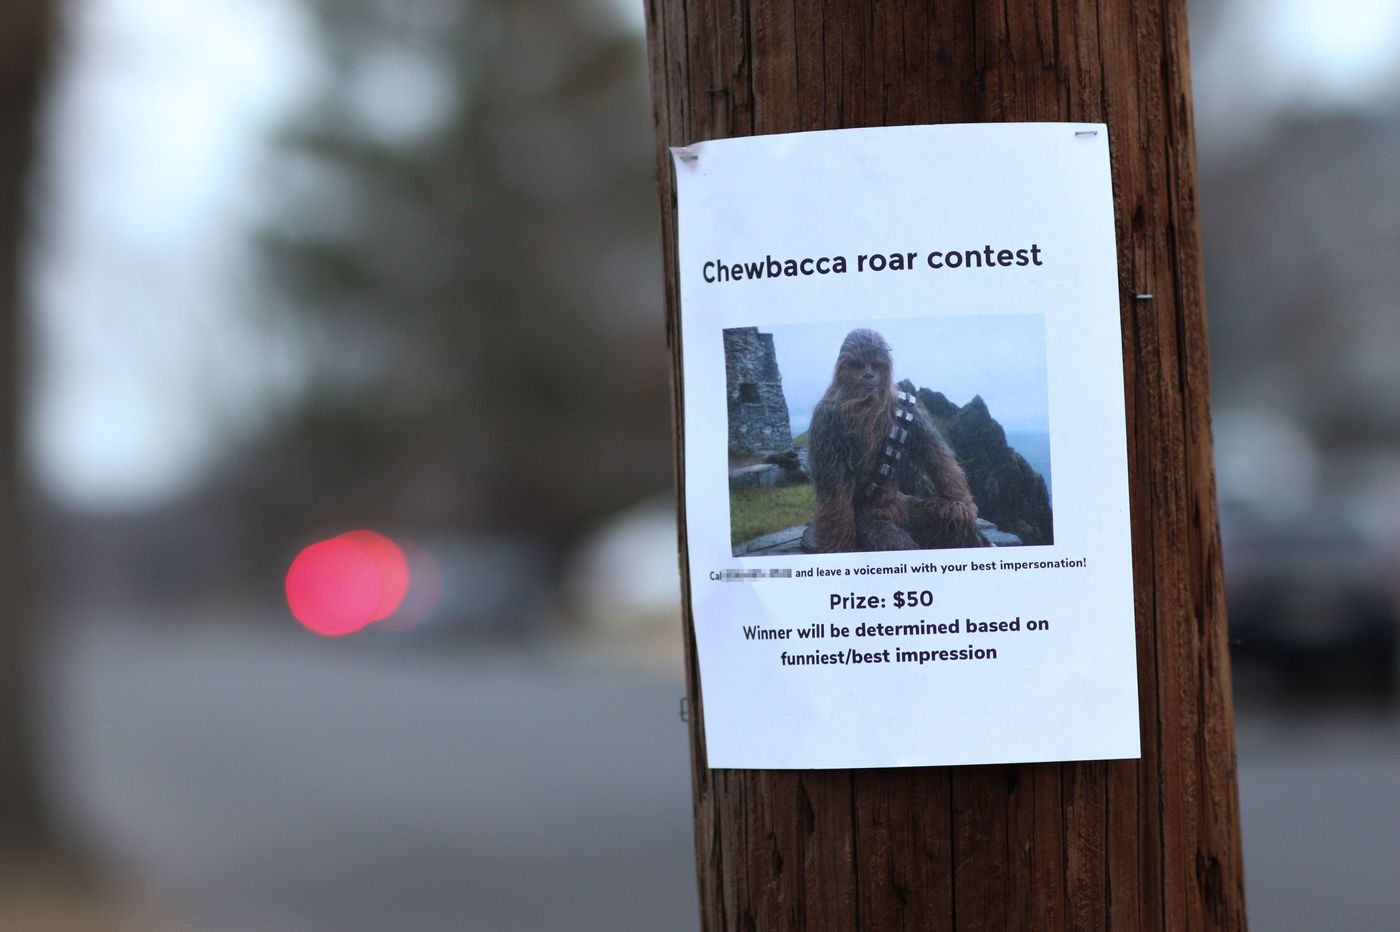 'It's a trap!' Why 'Chewbacca roar contest' fliers have been spotted around Philly and South Jersey.